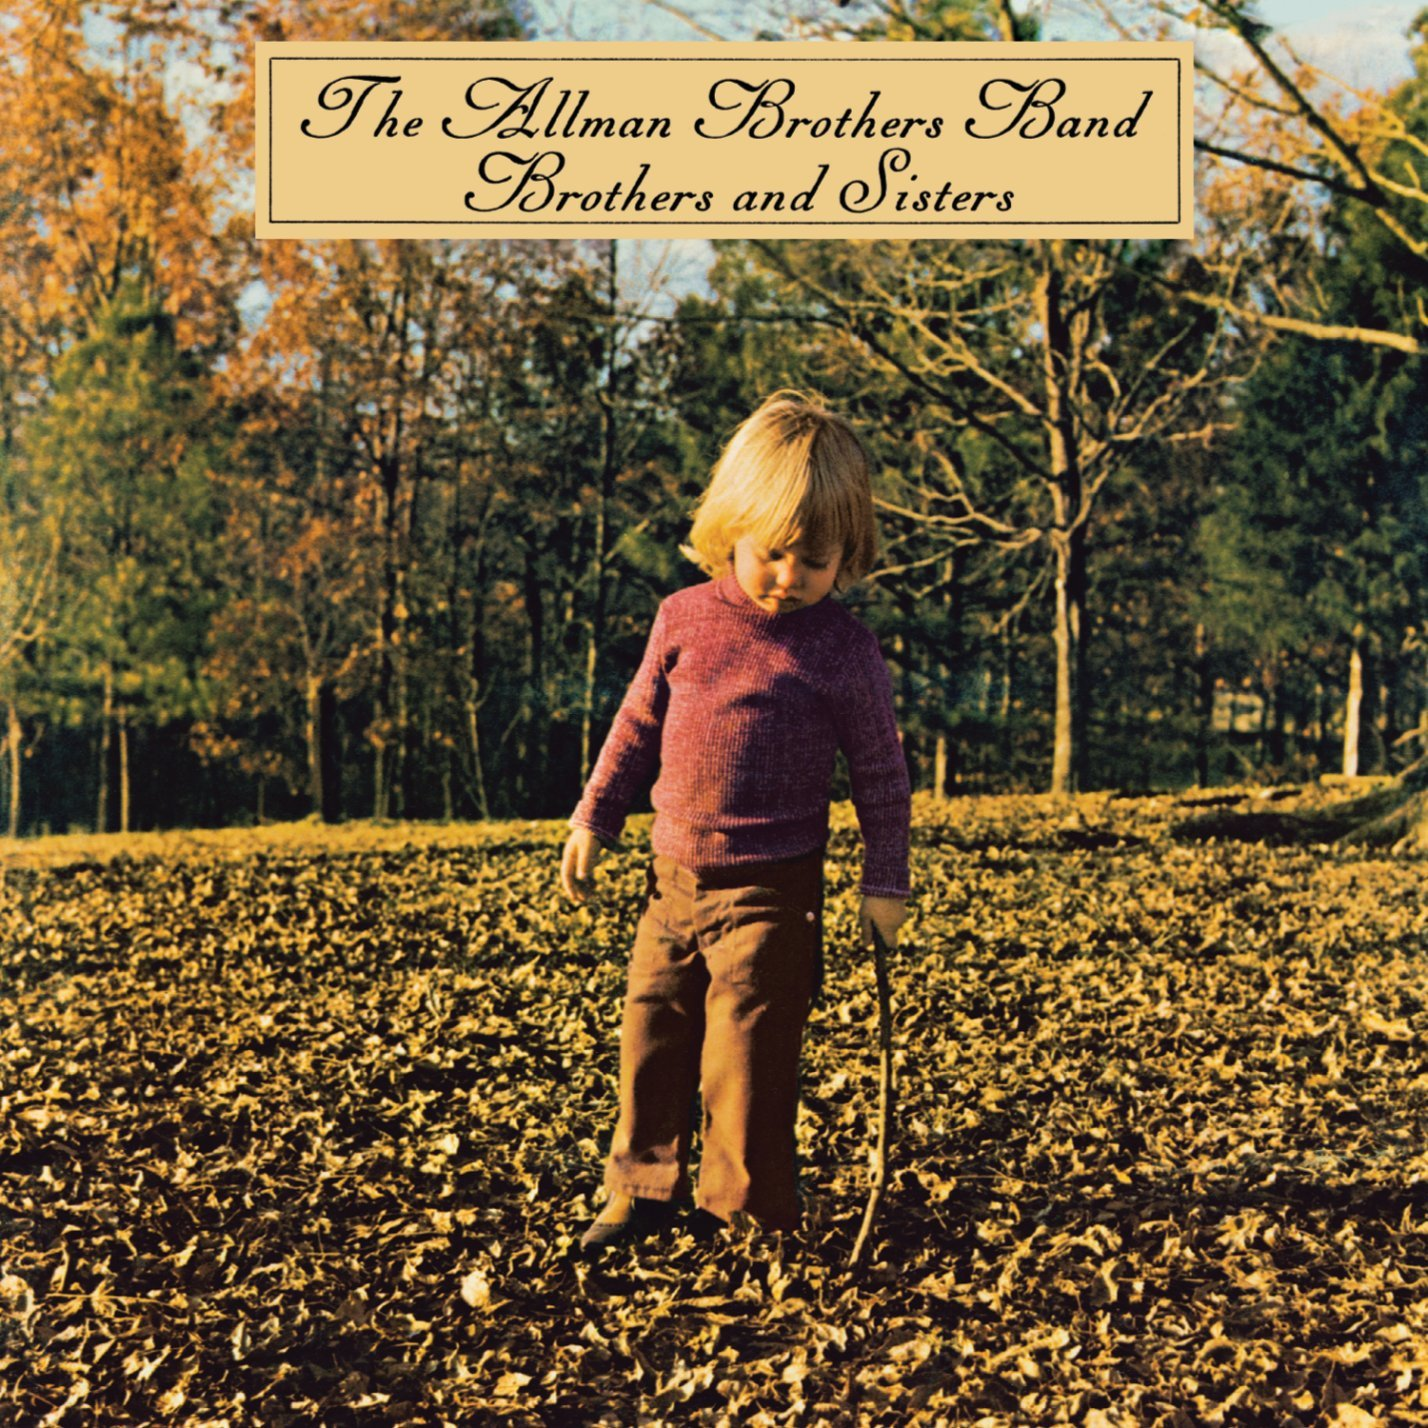 Brothers & Sisters / The allman brothers bandのジャケット